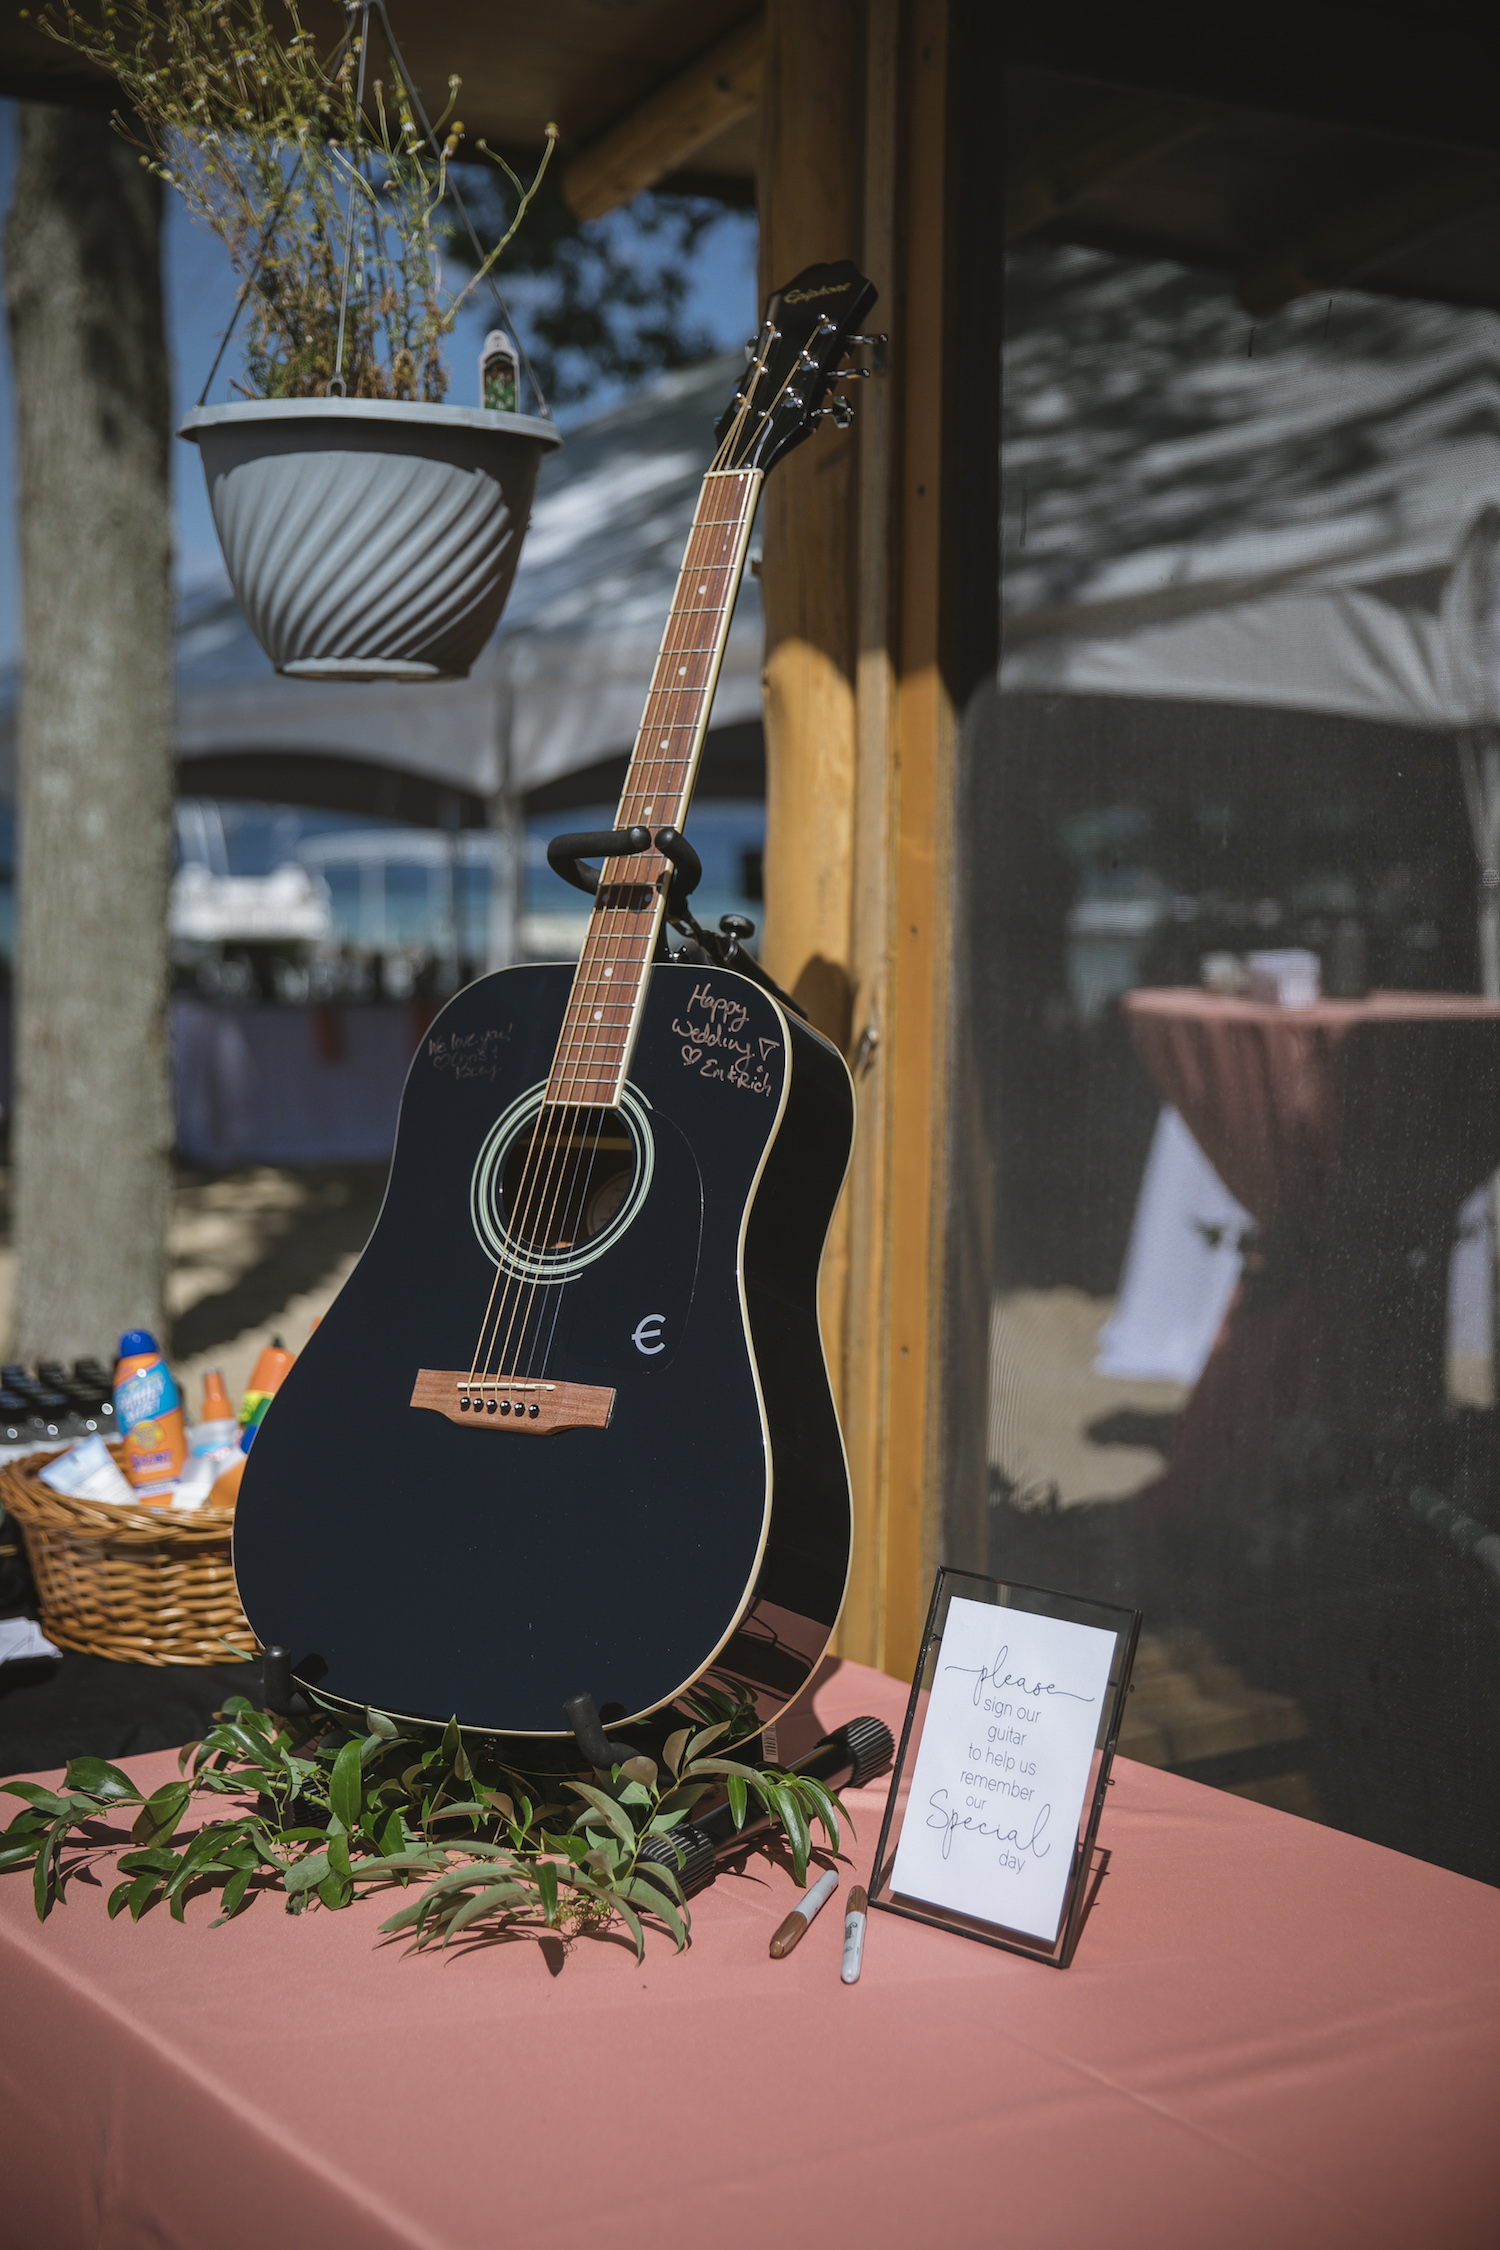 Guitar as guest book of Higgins Lake wedding